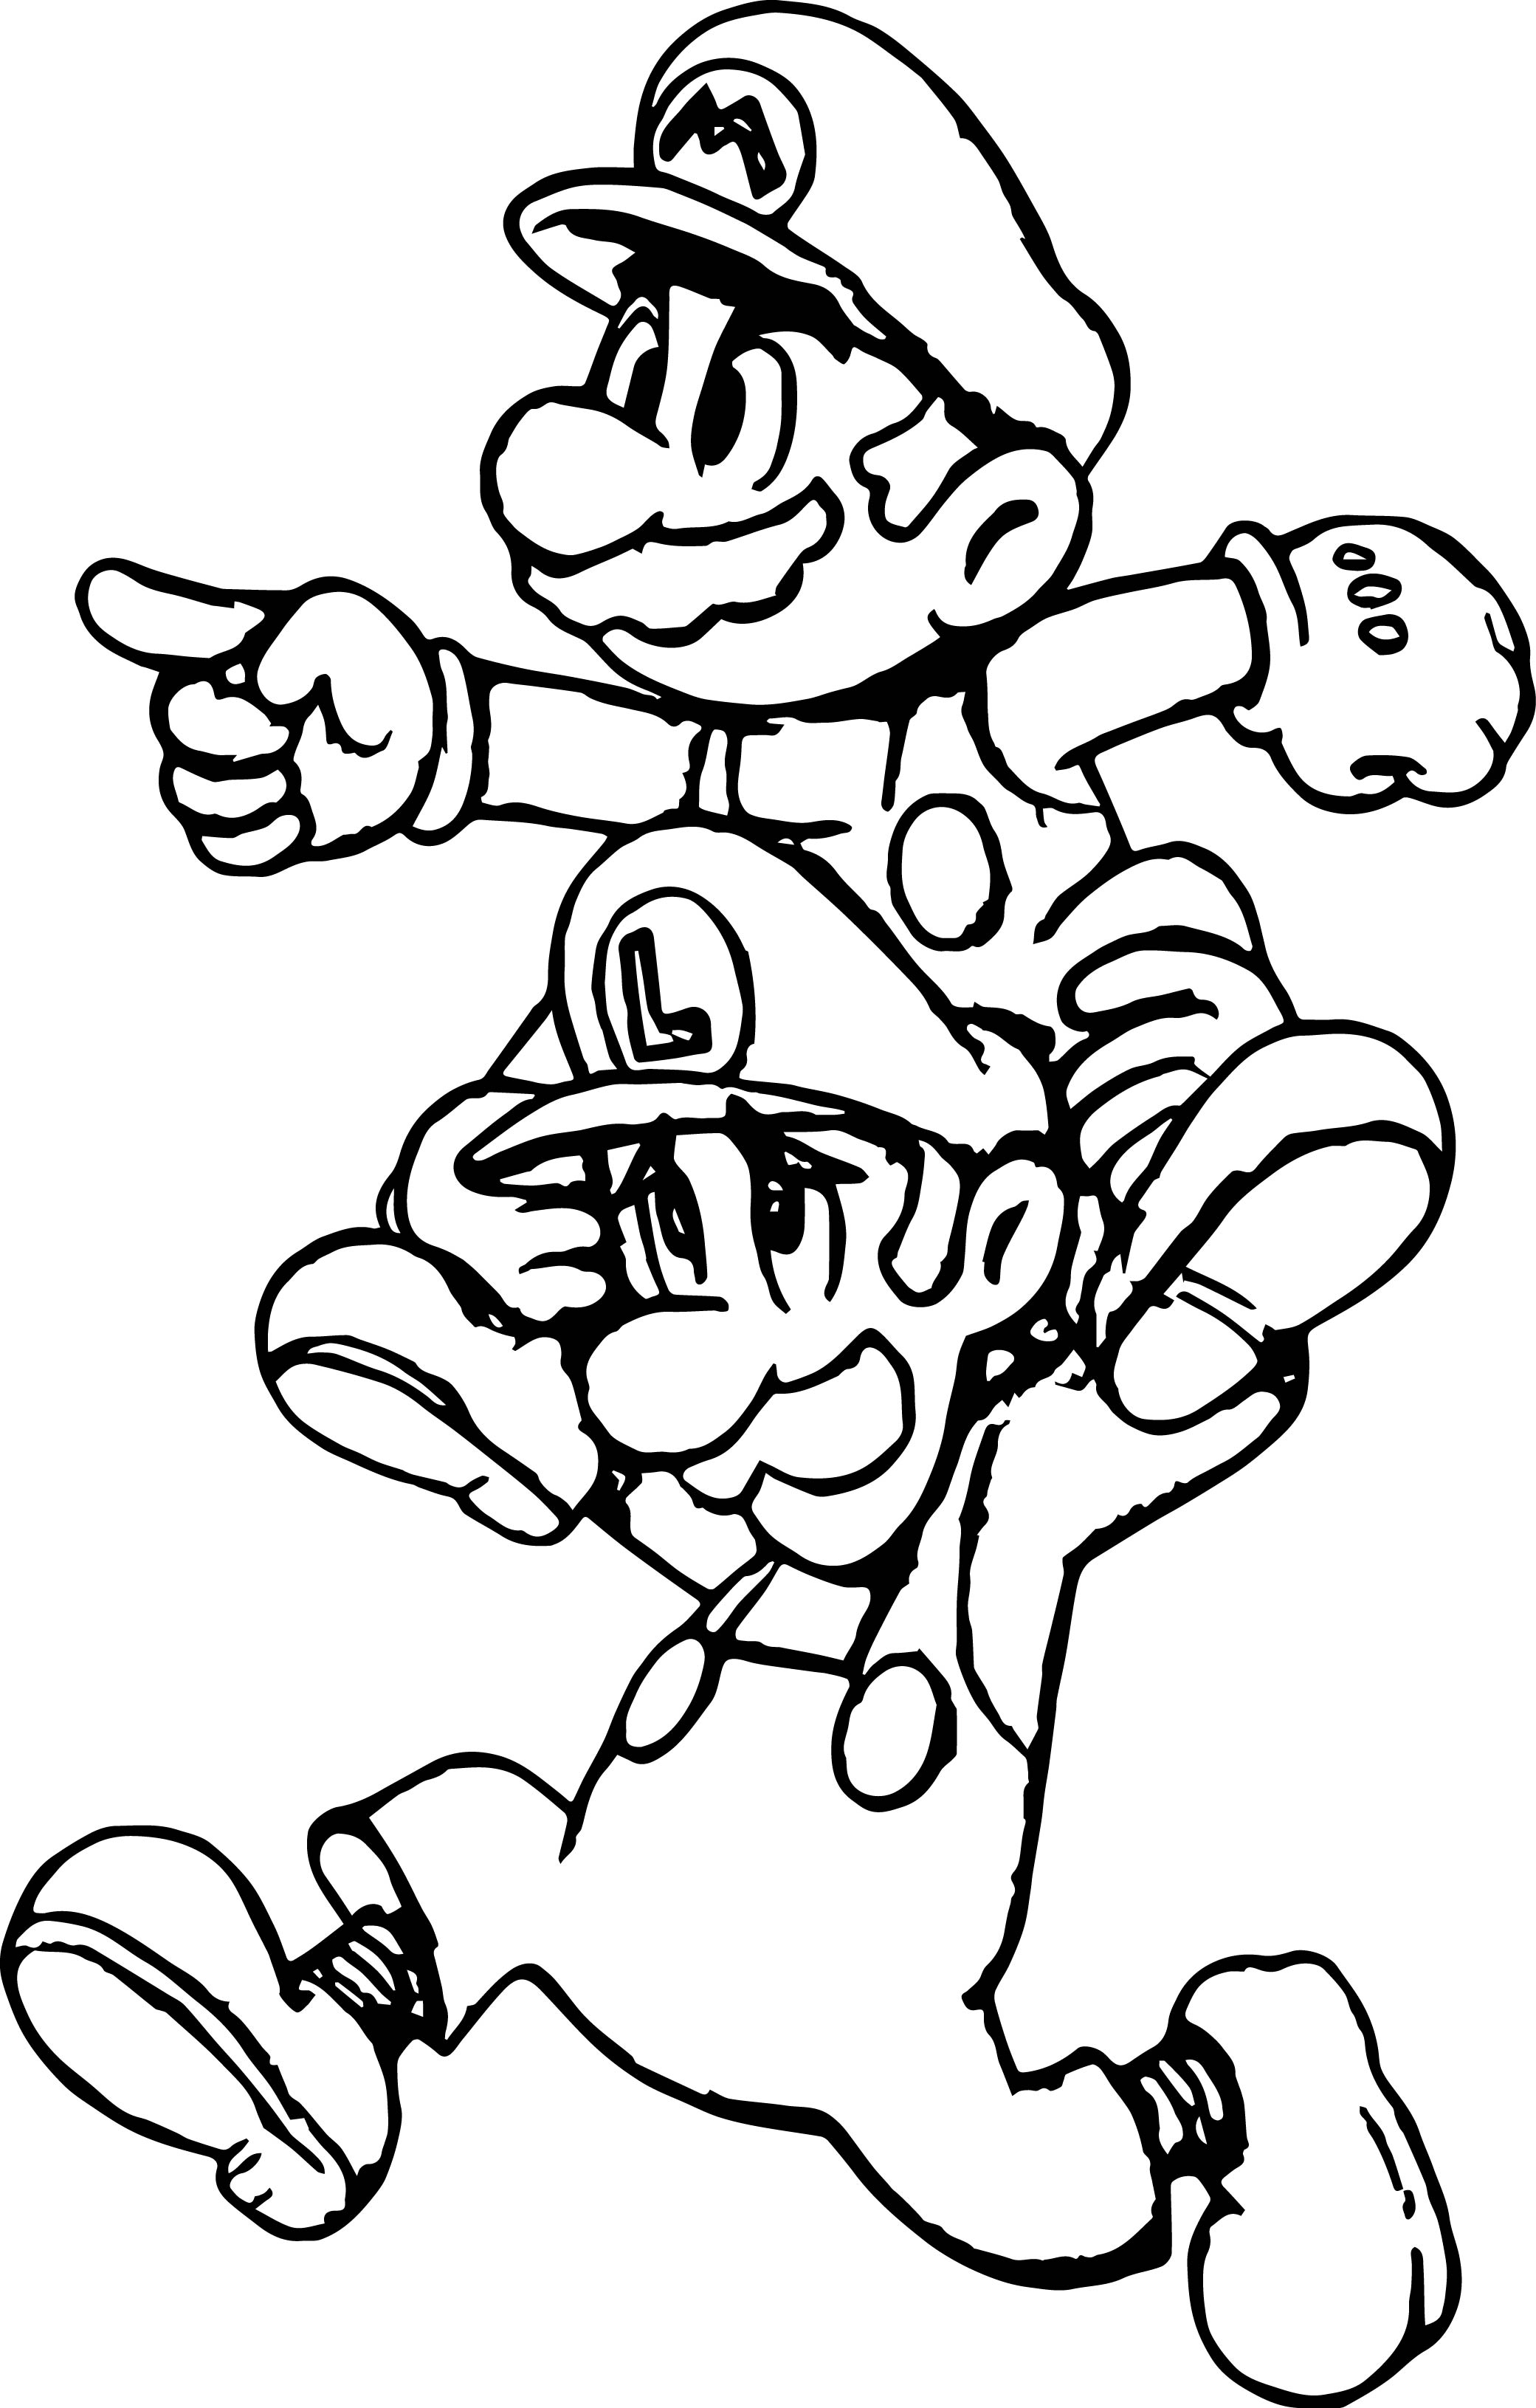 Super Mario Lets Go Coloring Page